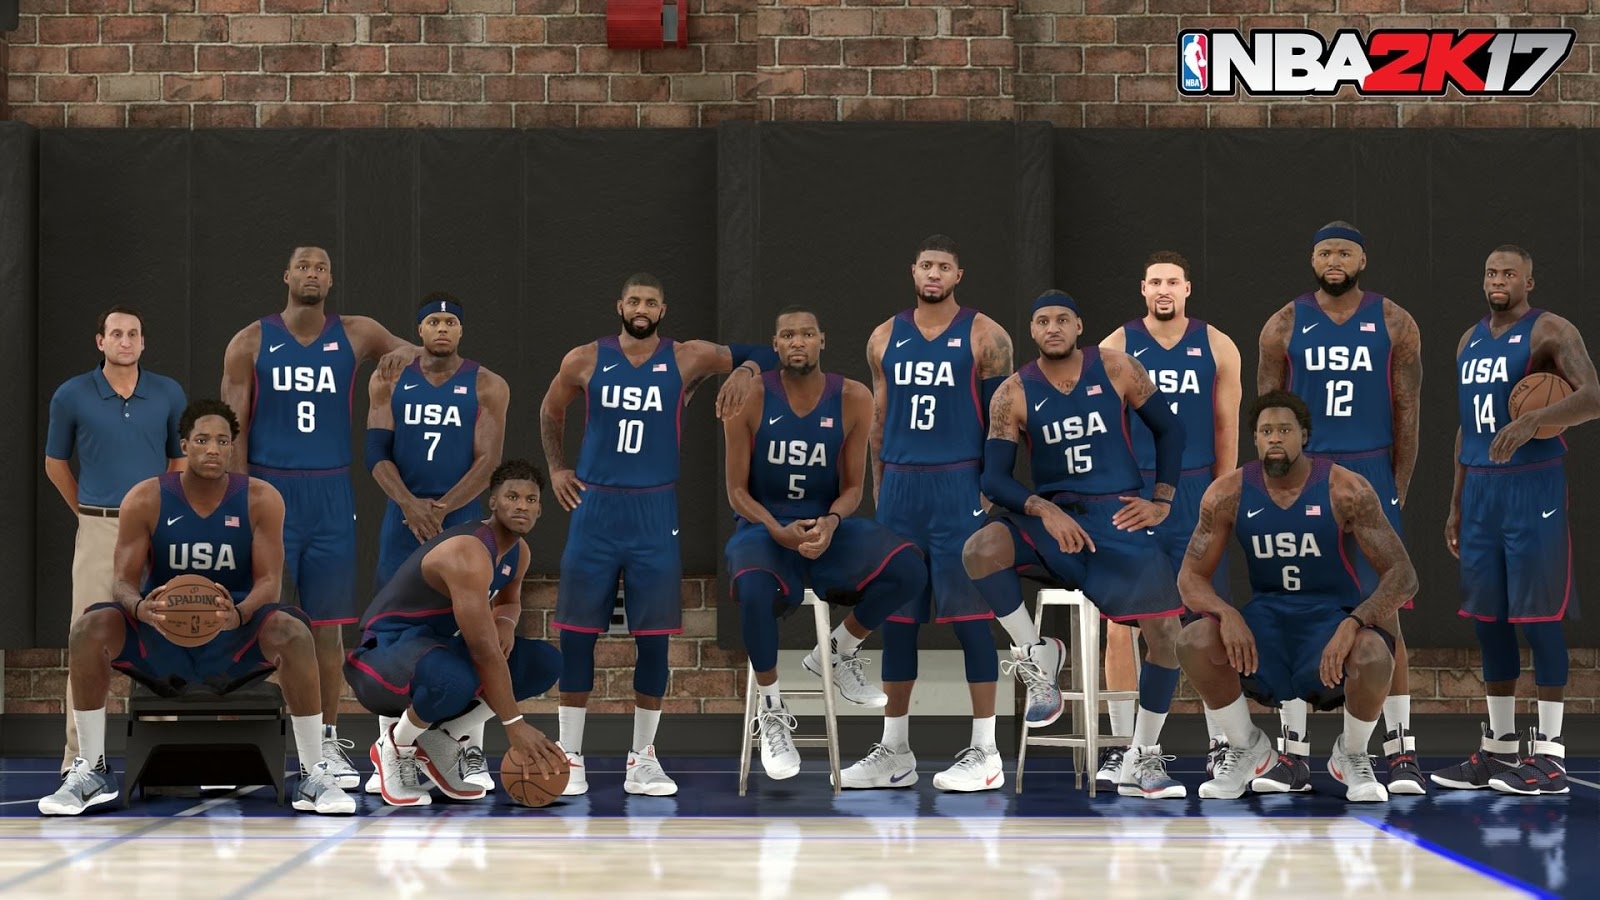 NBA 2k17 2016 USA Basketball Men's National Team Screenshot